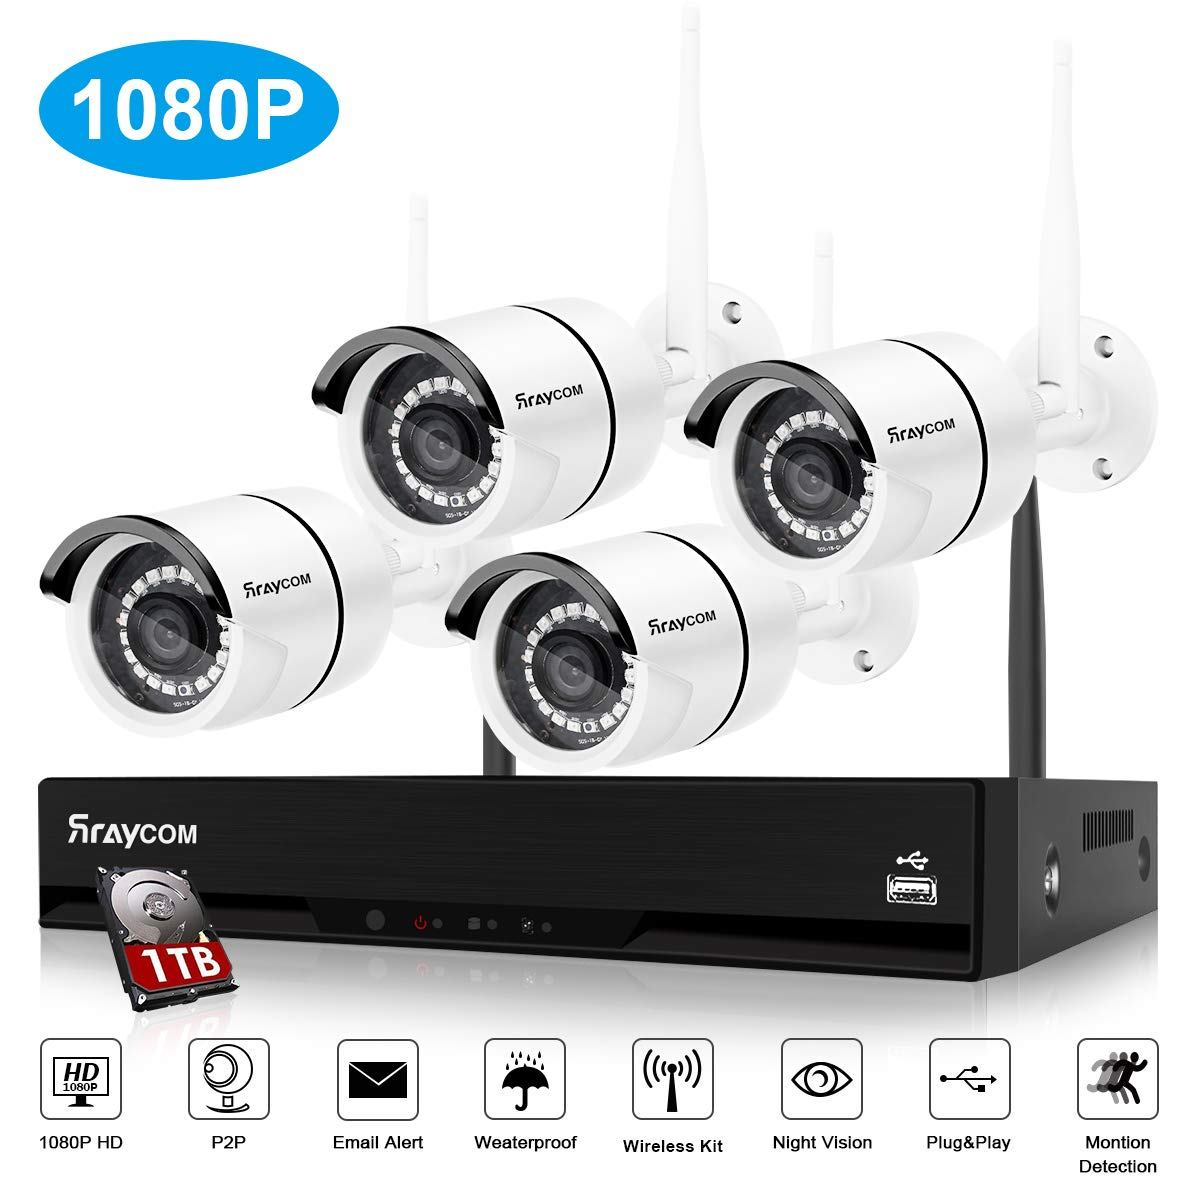 Rraycom 4Channel 1080H DVR 2000TVL 720P HD Outdoor Home Security Surveillance Camera System with 1TB Hard Drive White 1080P 4 Cameras 1TB